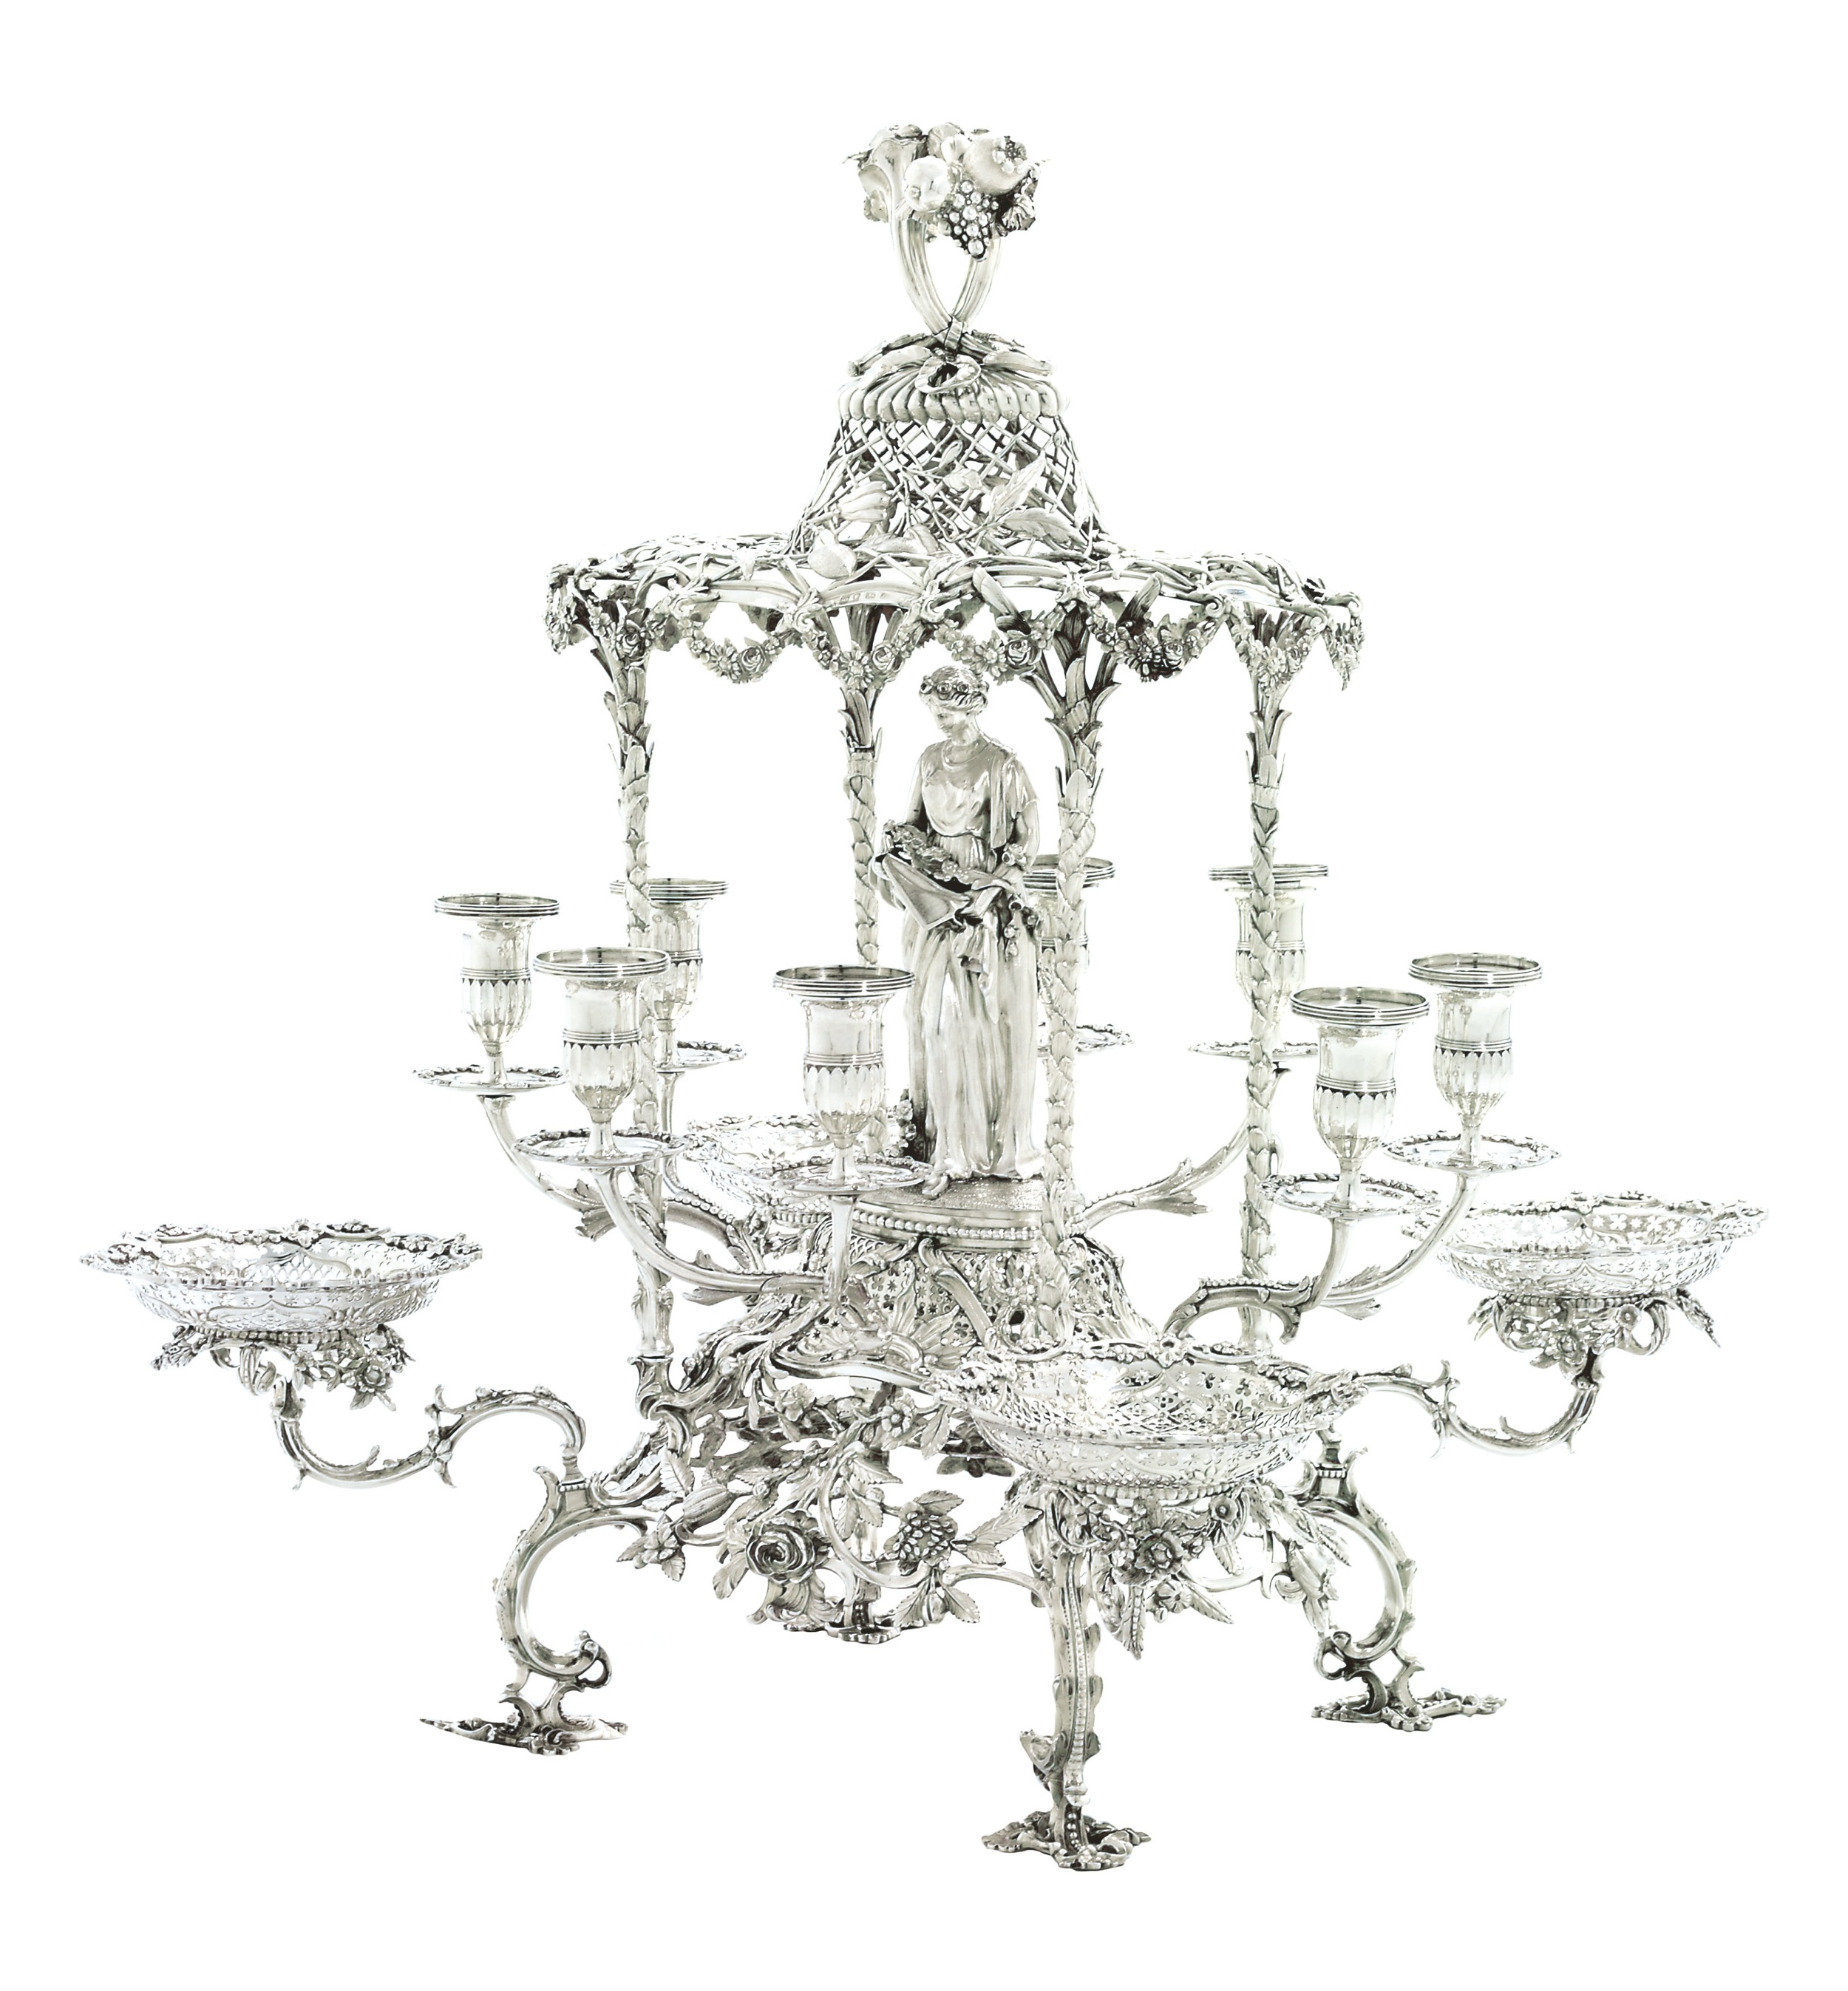 Using Antique Epergne for Dining Table Accessories Ideas: Redoubtable Mirrored Esperne | Gorgeous Epergne